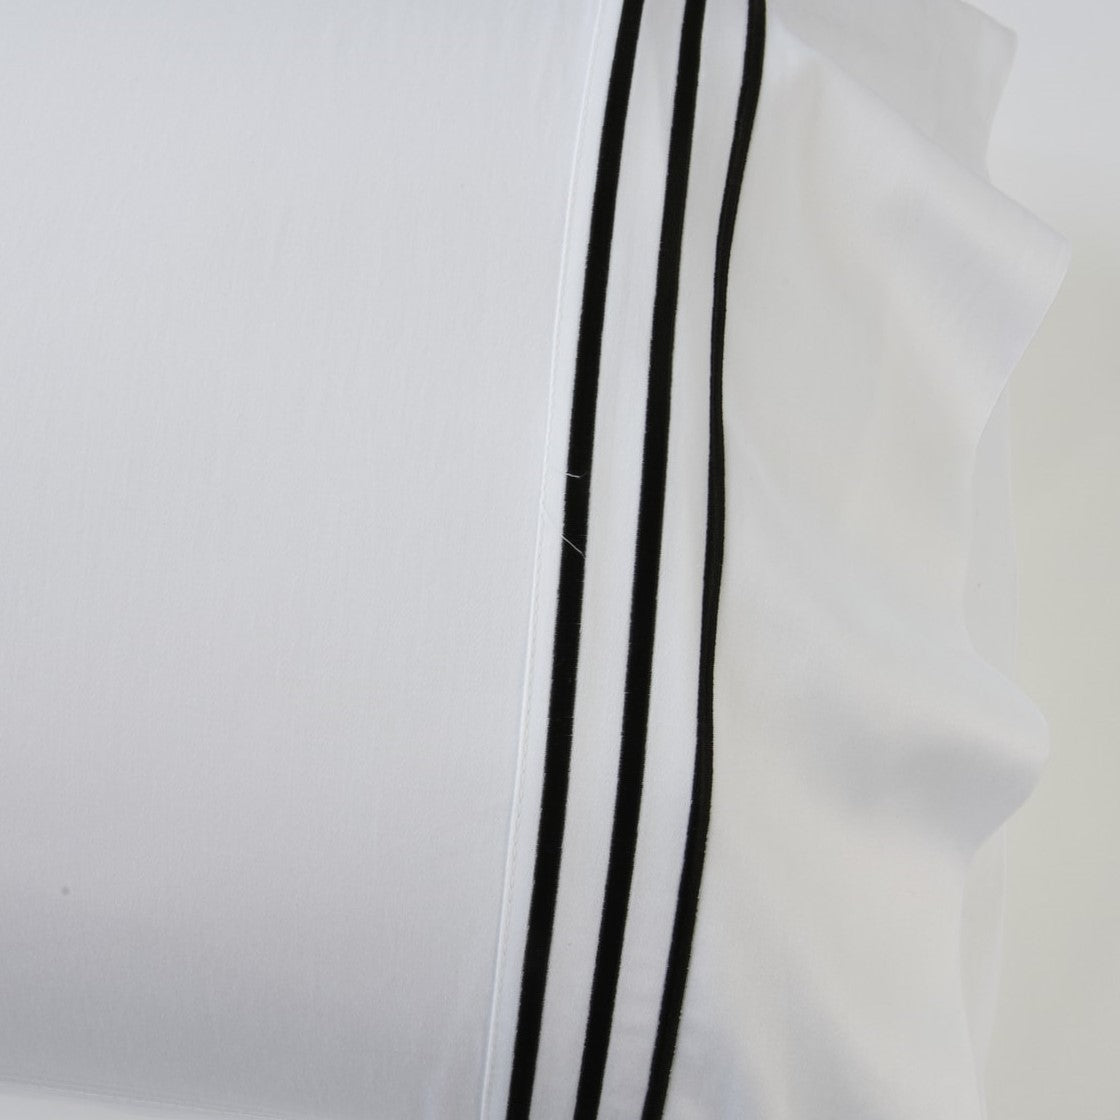 1000 Thread Count Sheet Set - White with Black Embroidery Lines - Hotel Luxury